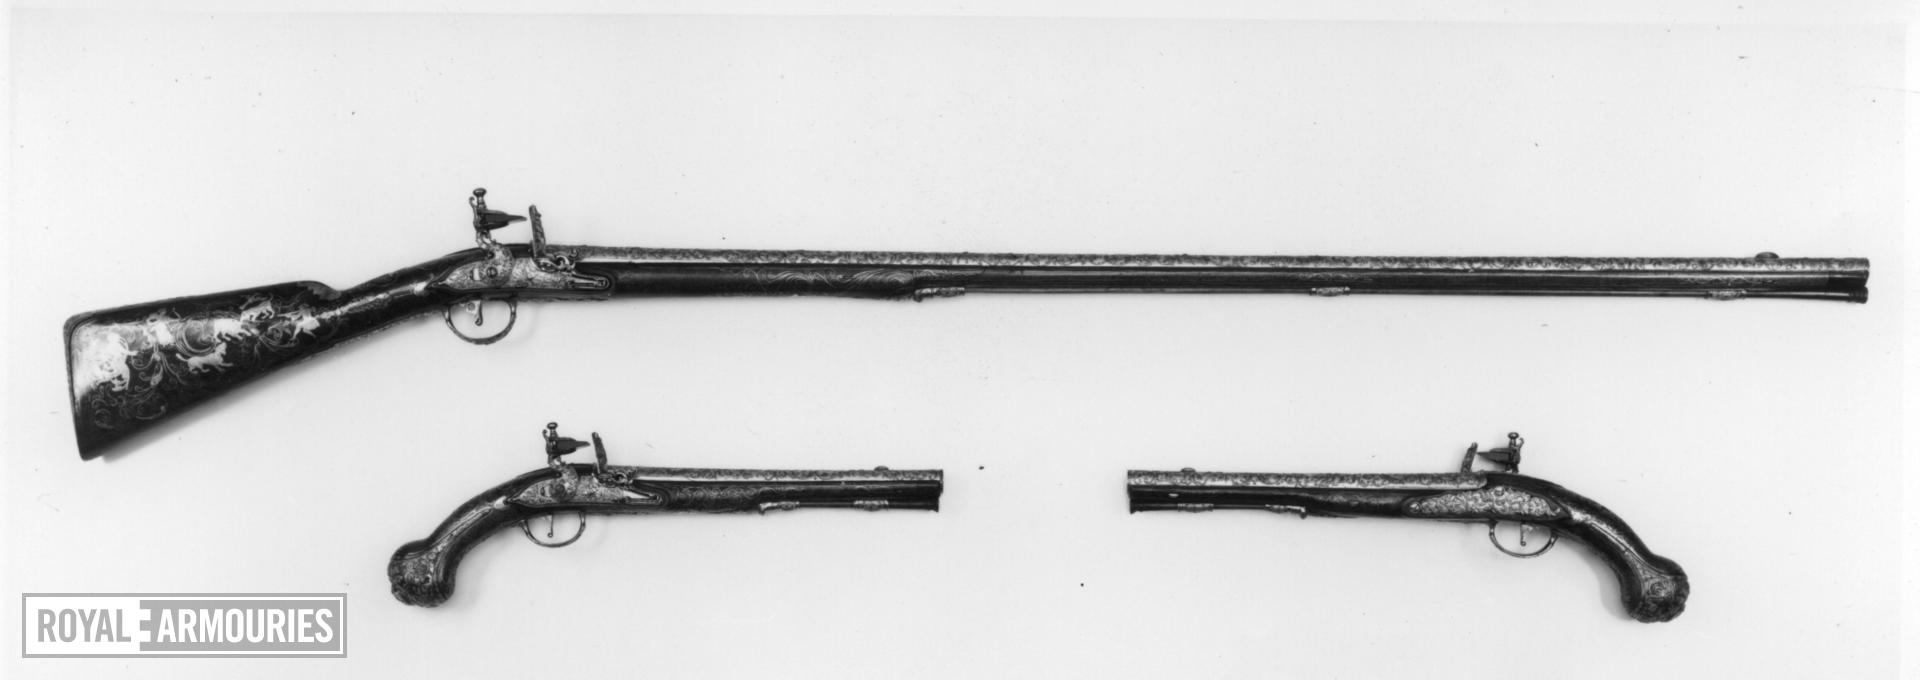 Flintlock sporting gun - part of the Tula Garniture Flintlock sporting gun made for Empress Elizabeth of Russia at Tula